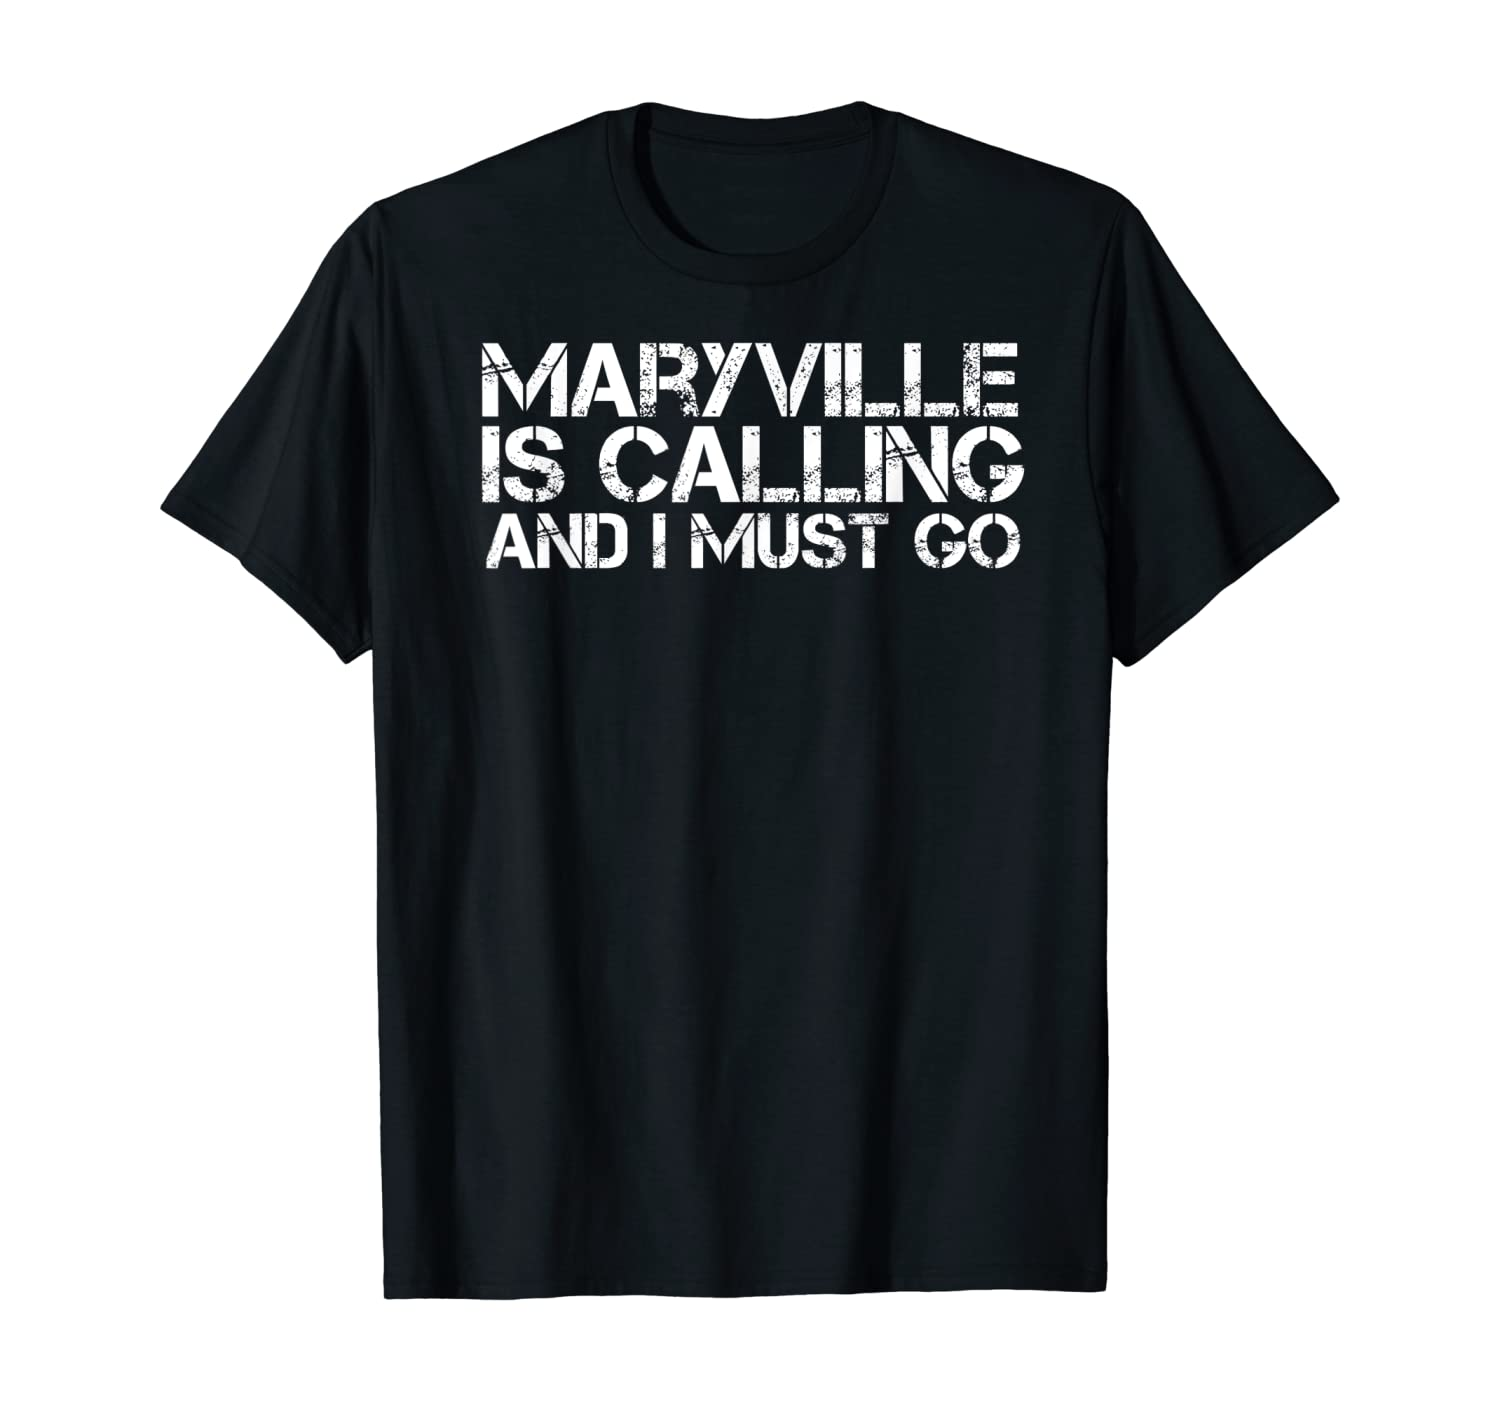 MARYVILLE TN TENNESSEE Funny City Trip Home Roots USA Gift T-Shirt